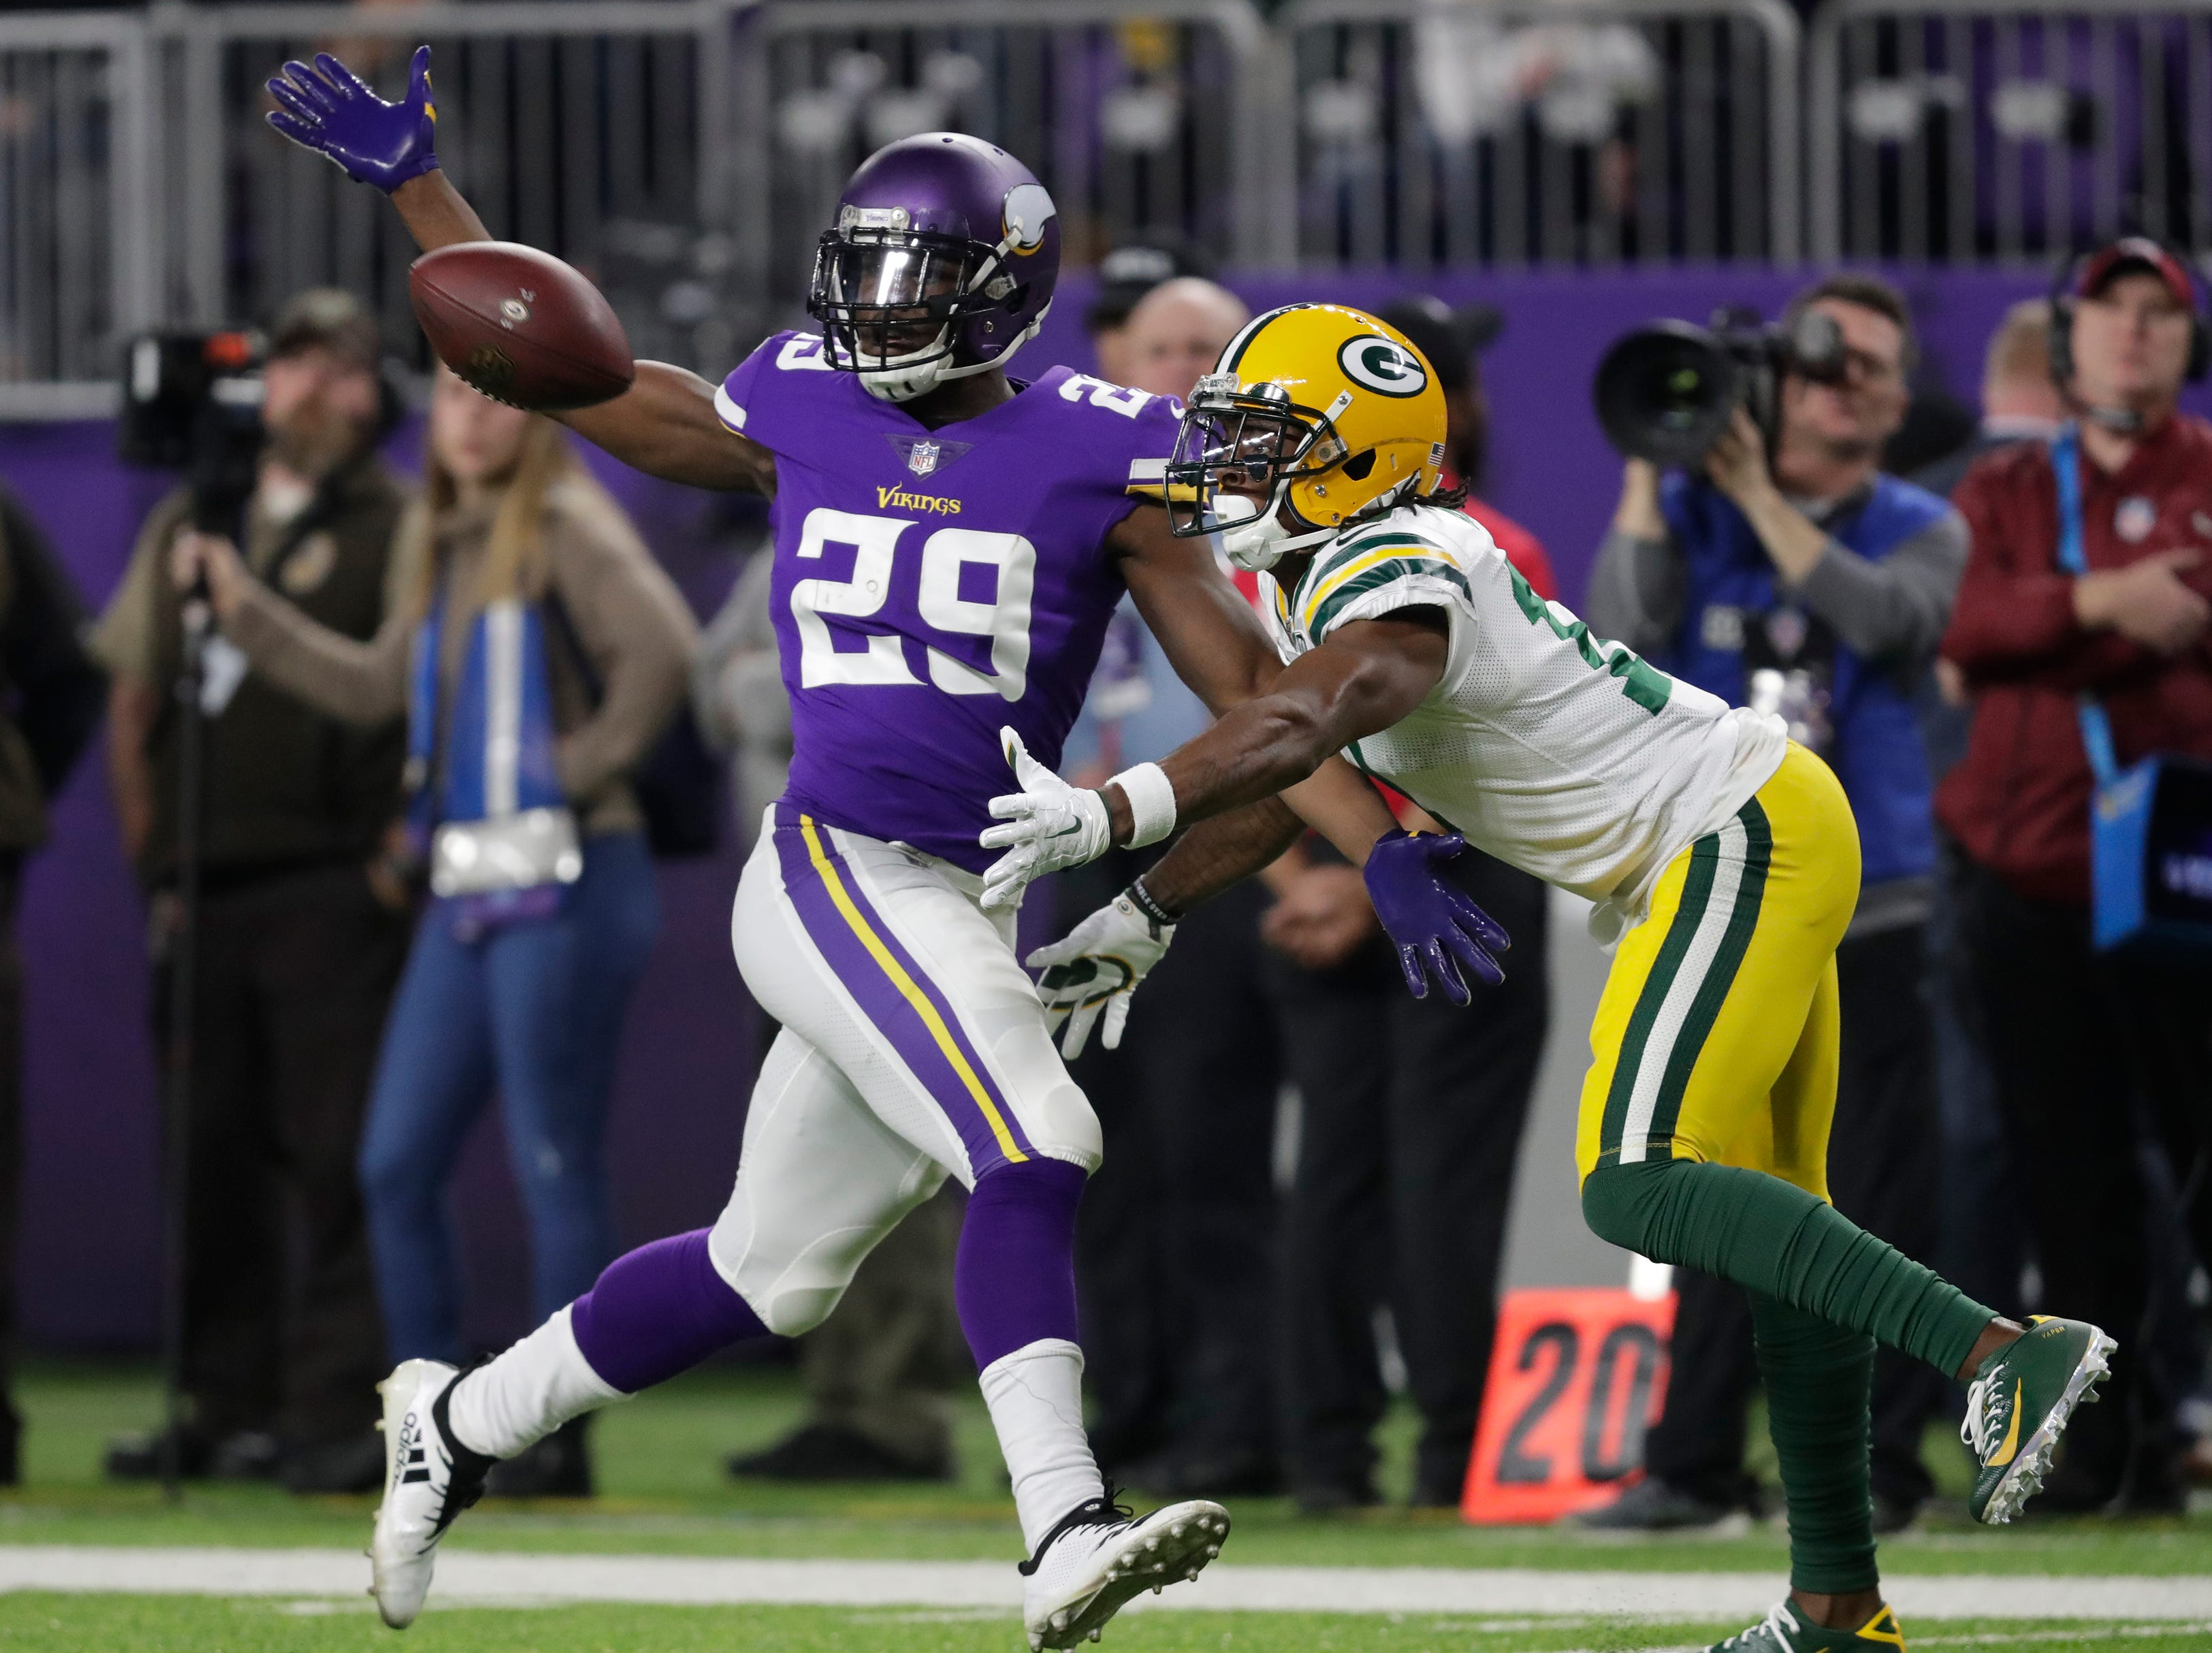 Green Bay Packers wide receiver Davante Adams (17) can't make a catch against Minnesota Vikings cornerback Xavier Rhodes (29) during their football game Sunday, November 25, 2018, at U.S. Bank Stadium in Minneapolis, Minn. 